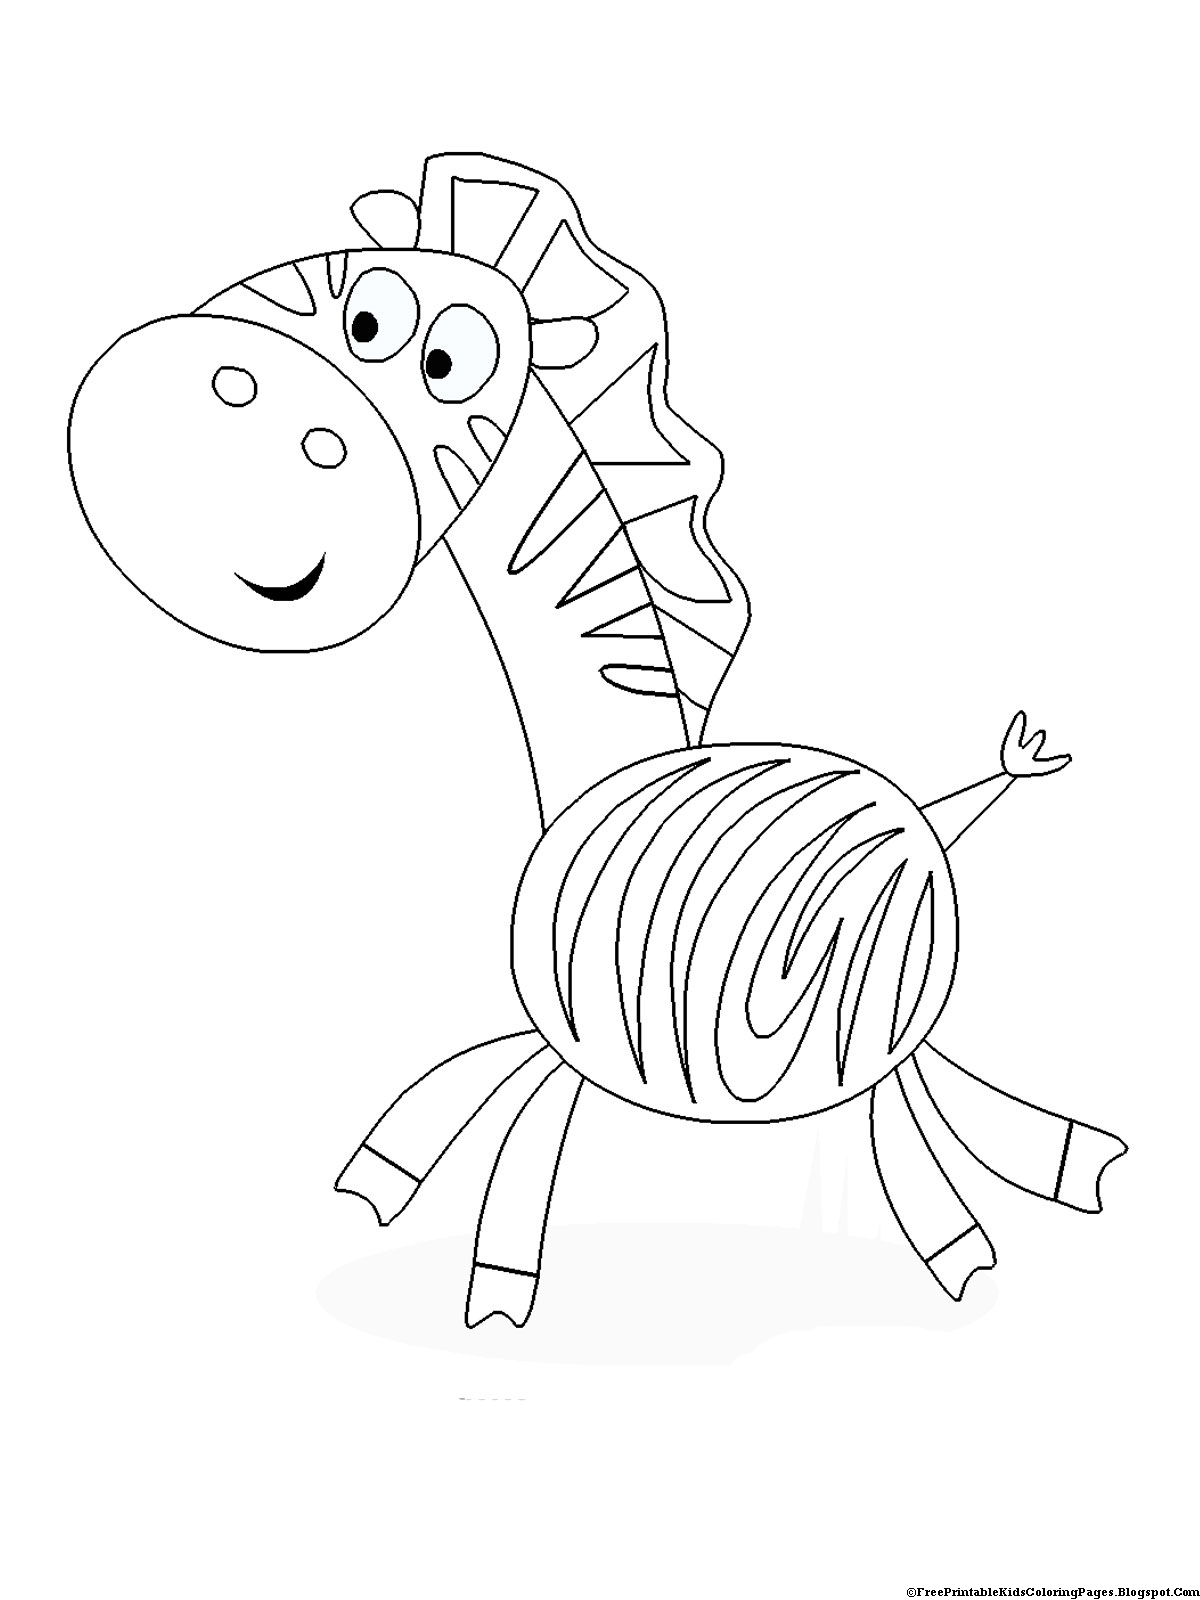 zebra coloring pages without stripes - photo #26